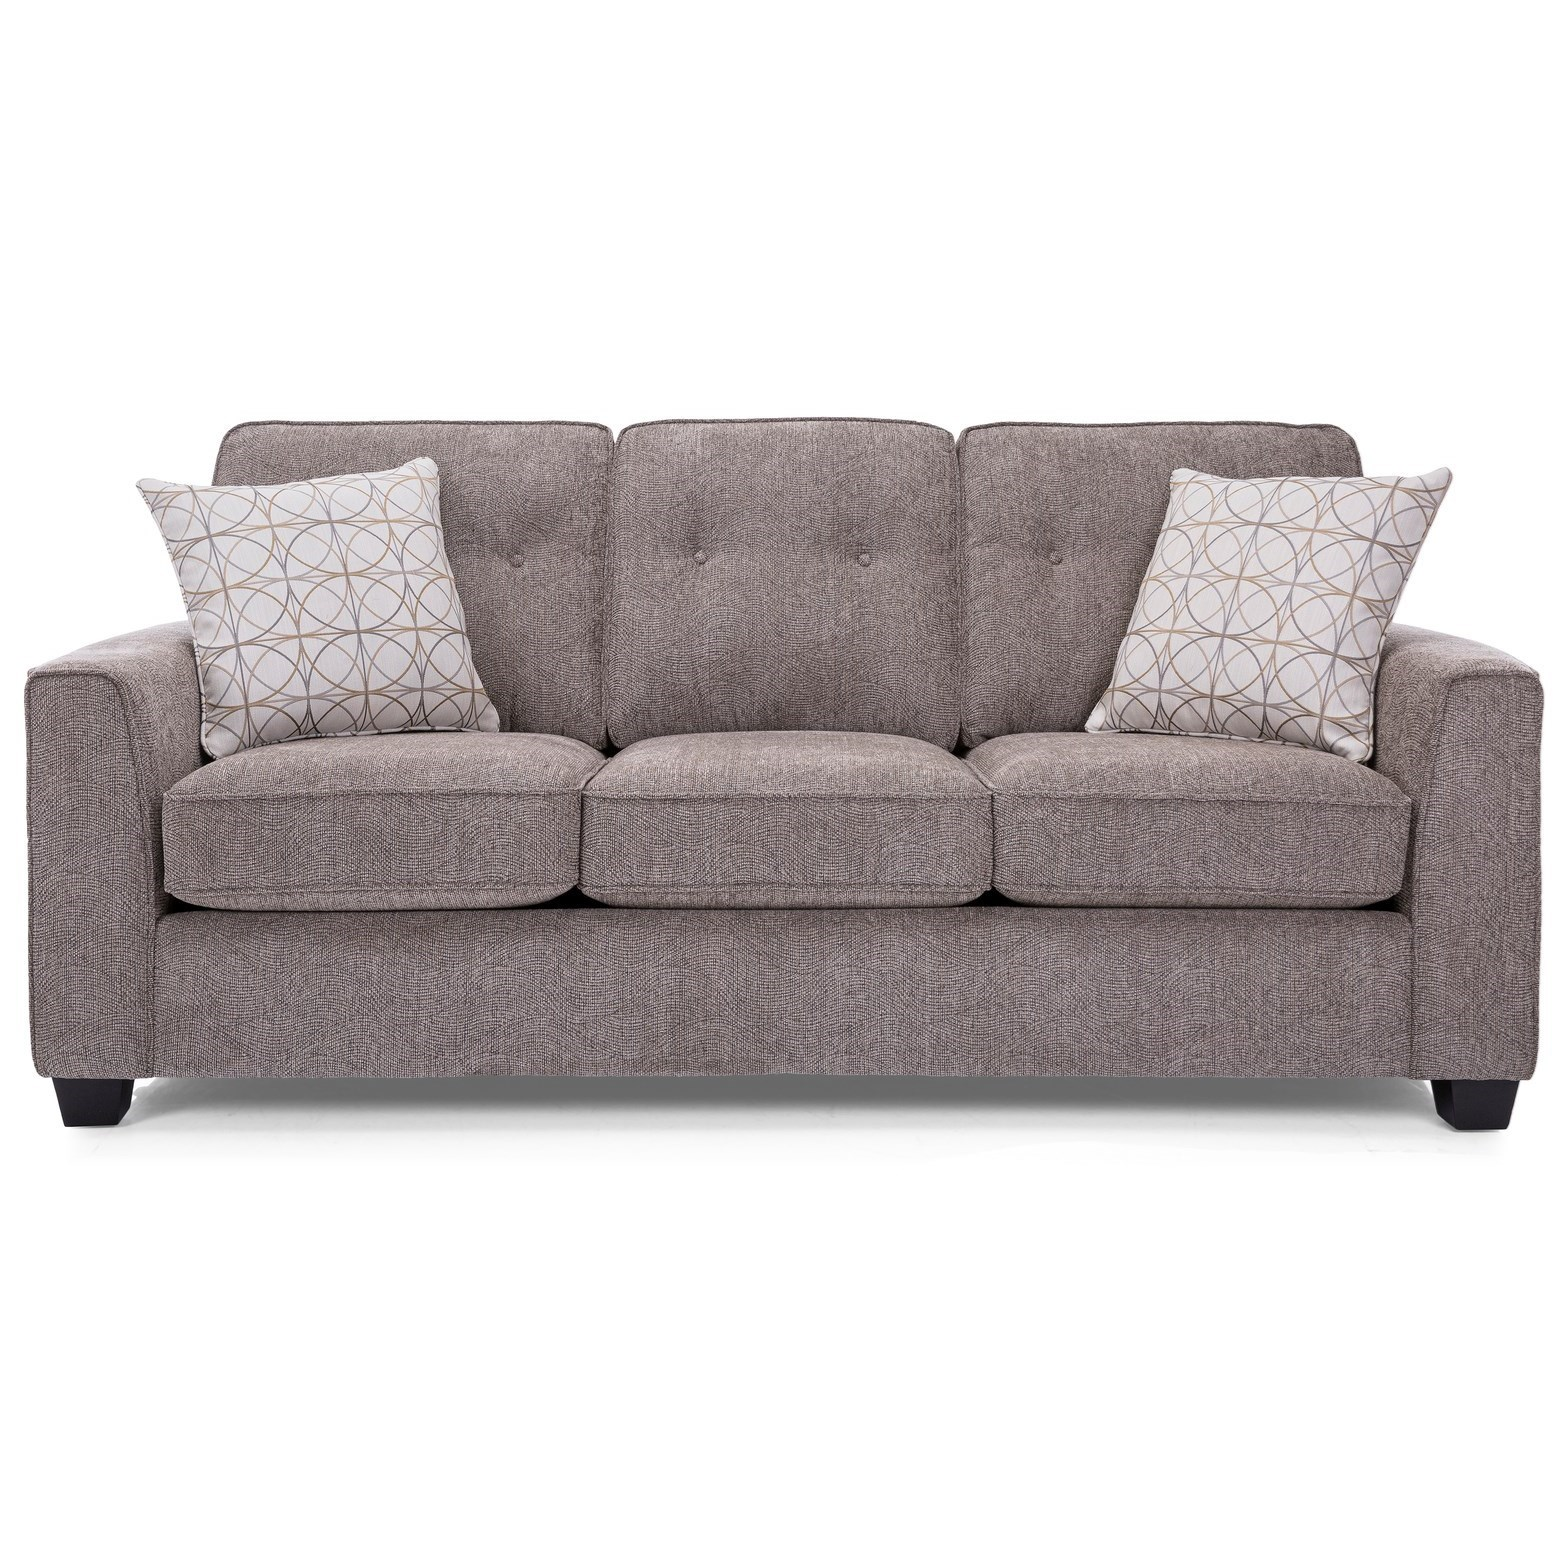 2967 Sofa by Decor-Rest at Rooms for Less